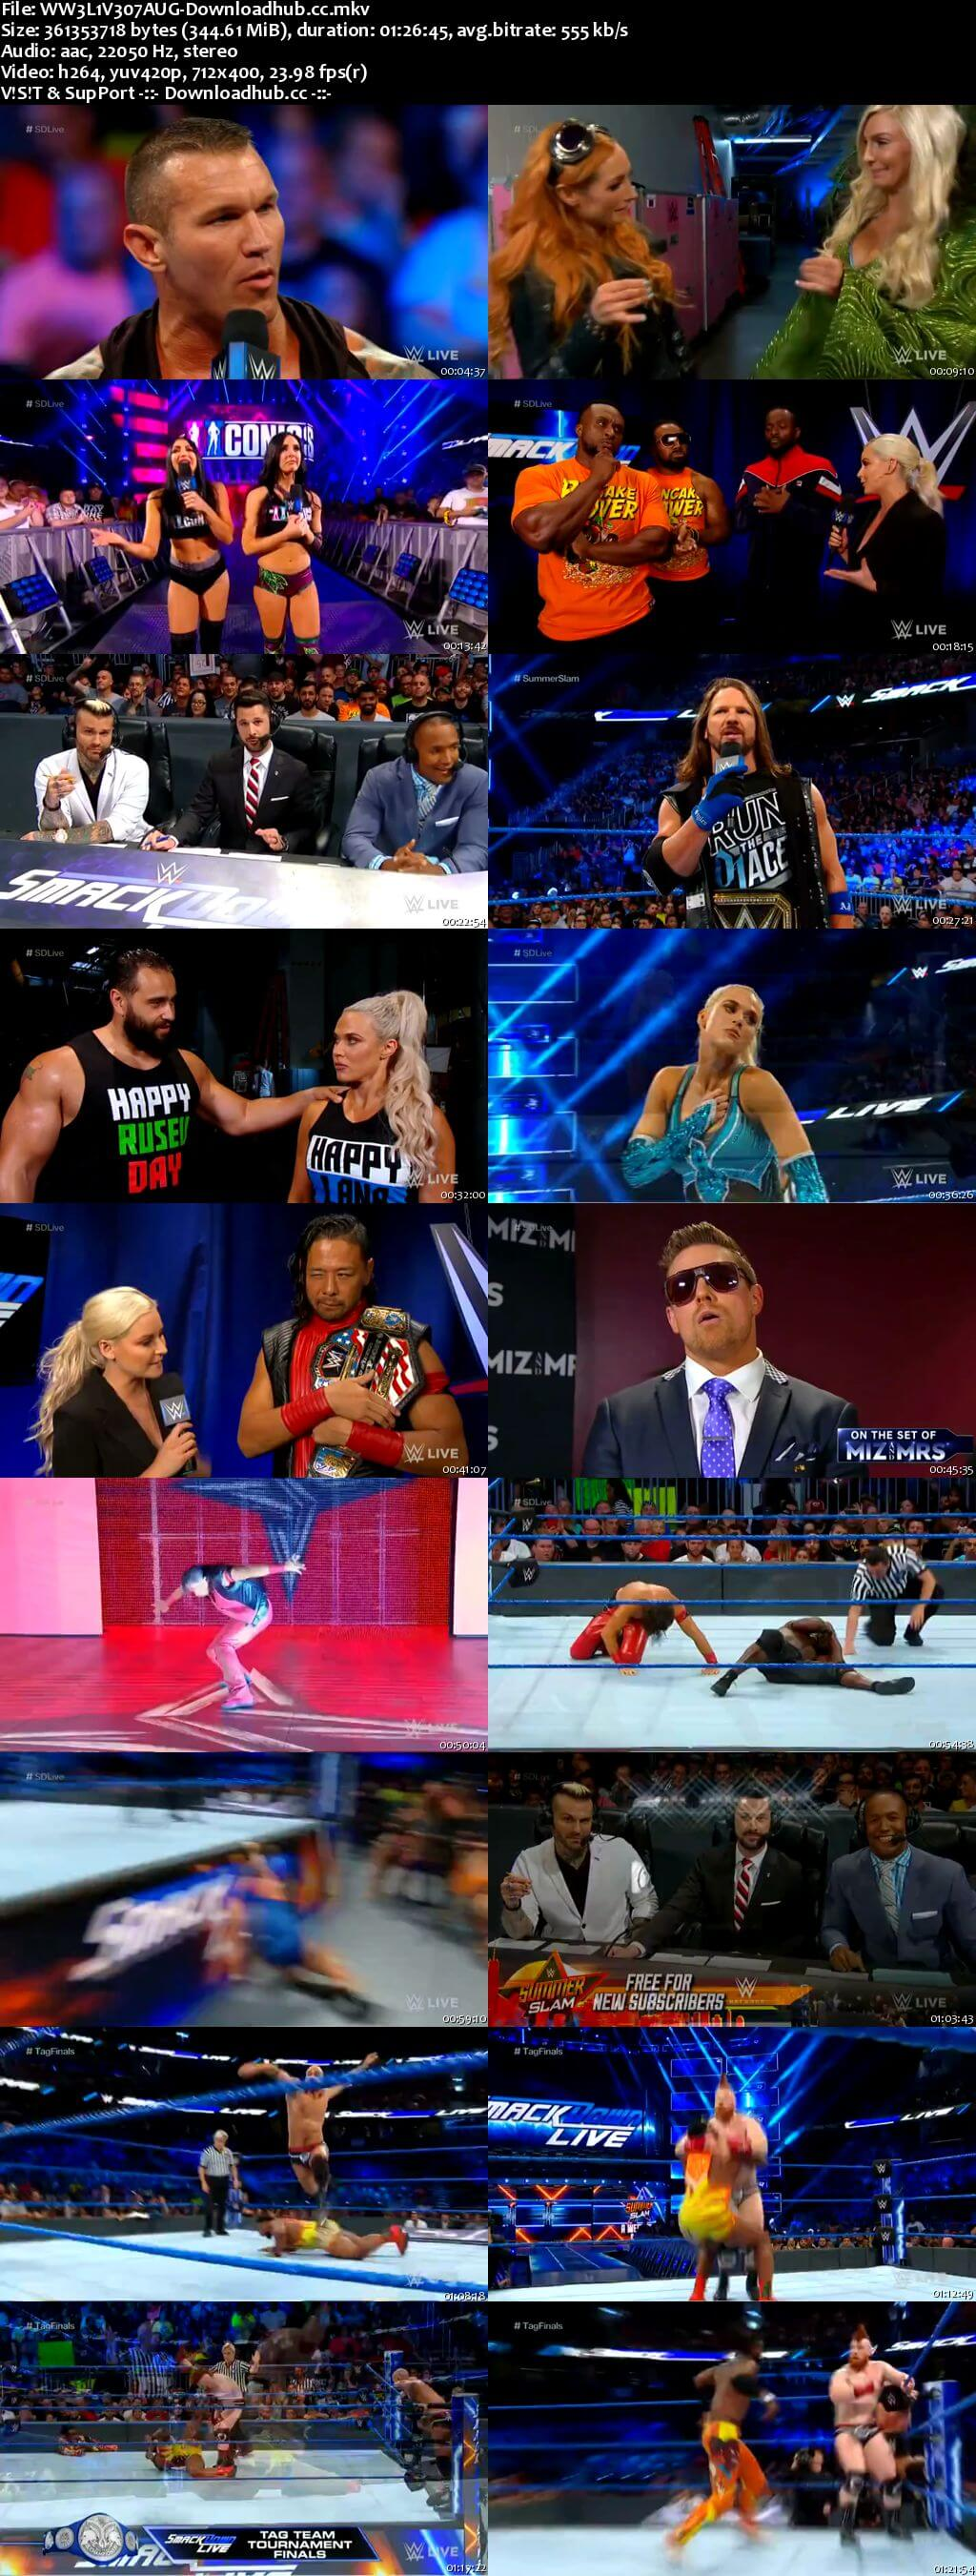 WWE Smackdown Live 07 August 2018 480p HDTV Download